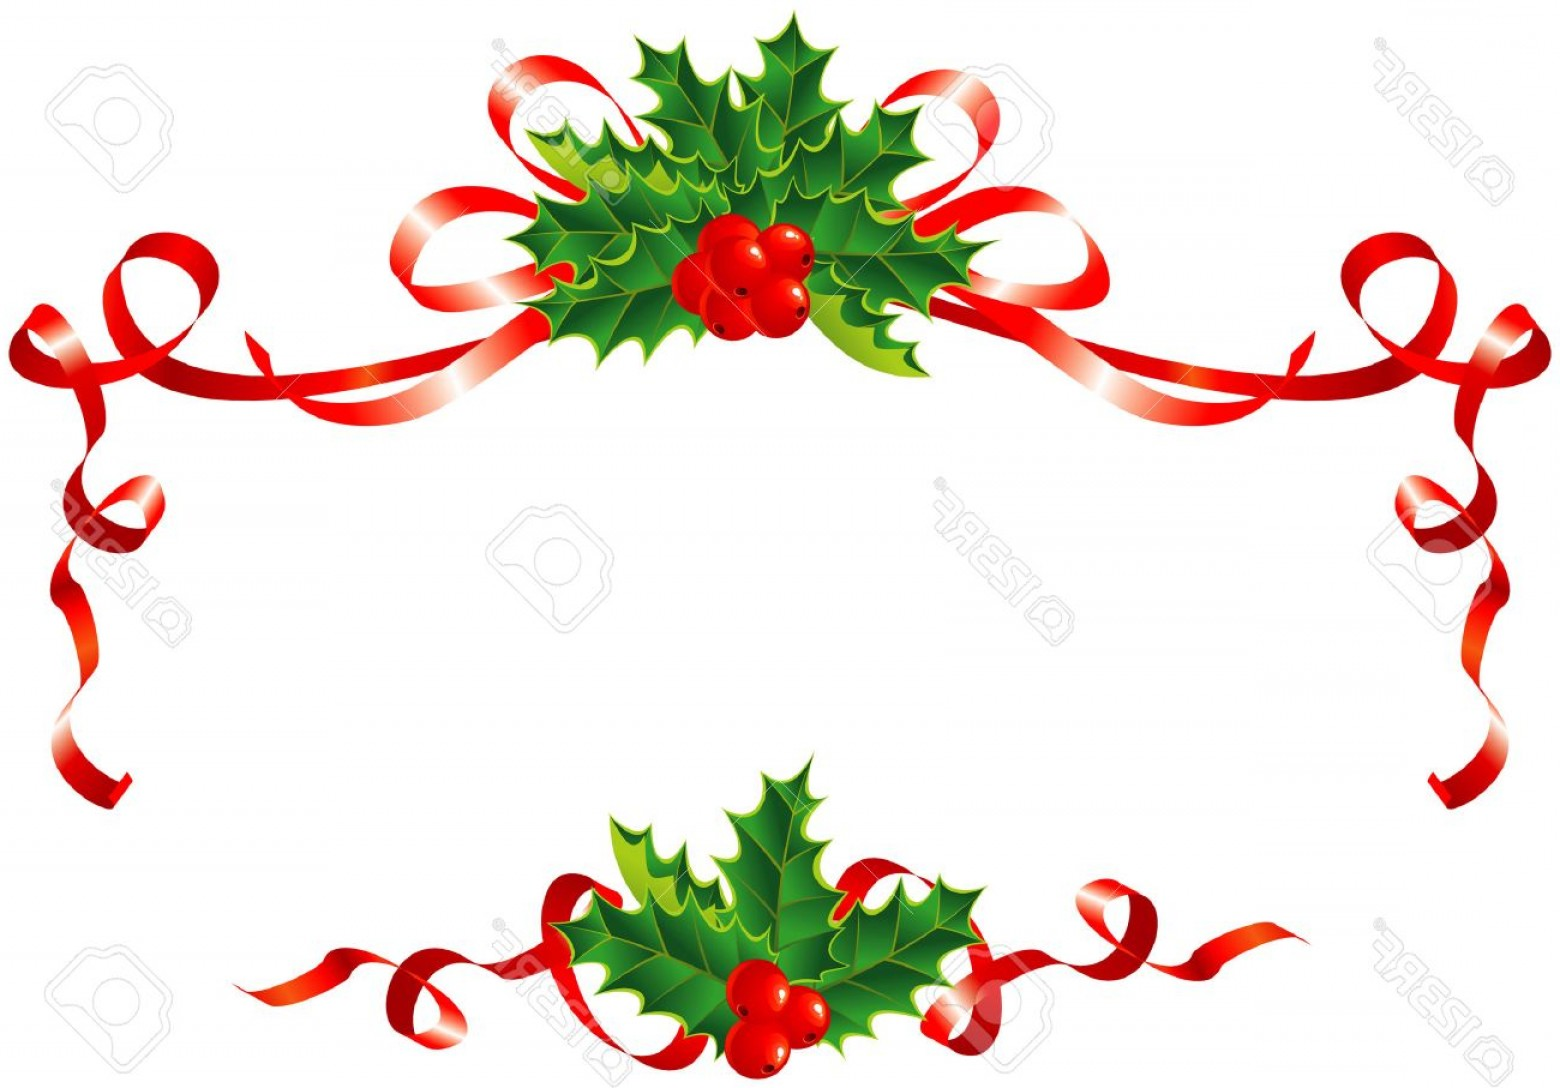 Christmas Holly Border Vector: Photochristmas Decoration Holly And Ribbons Border Vector Illustration